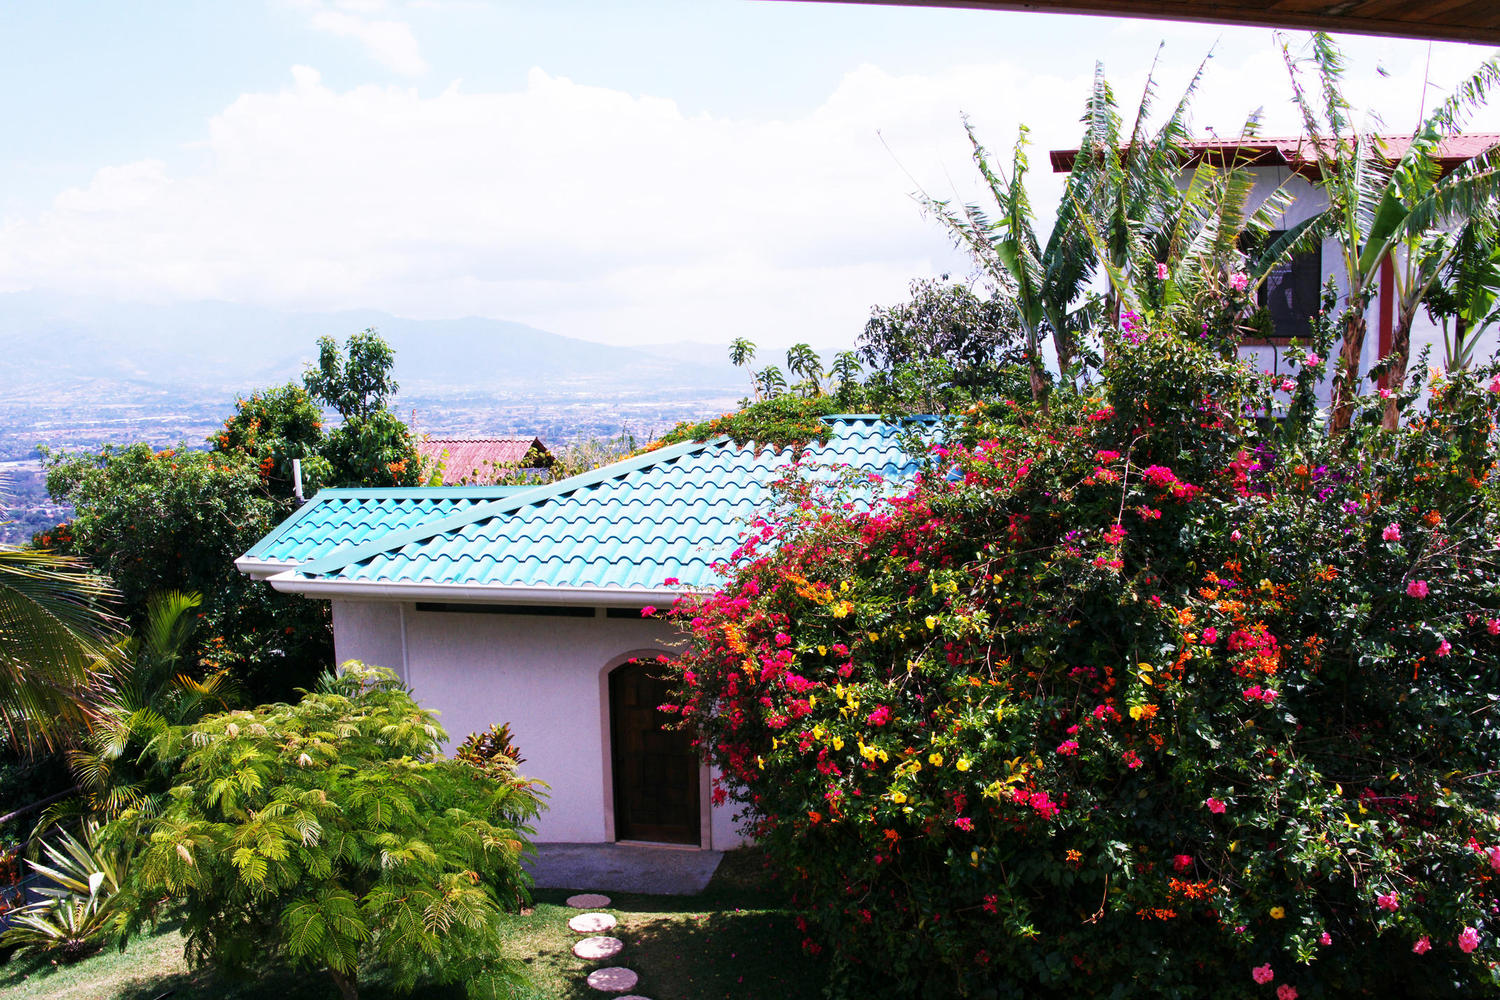 View with flowers at Hotel Buena Vista in Alajuela, San Jose